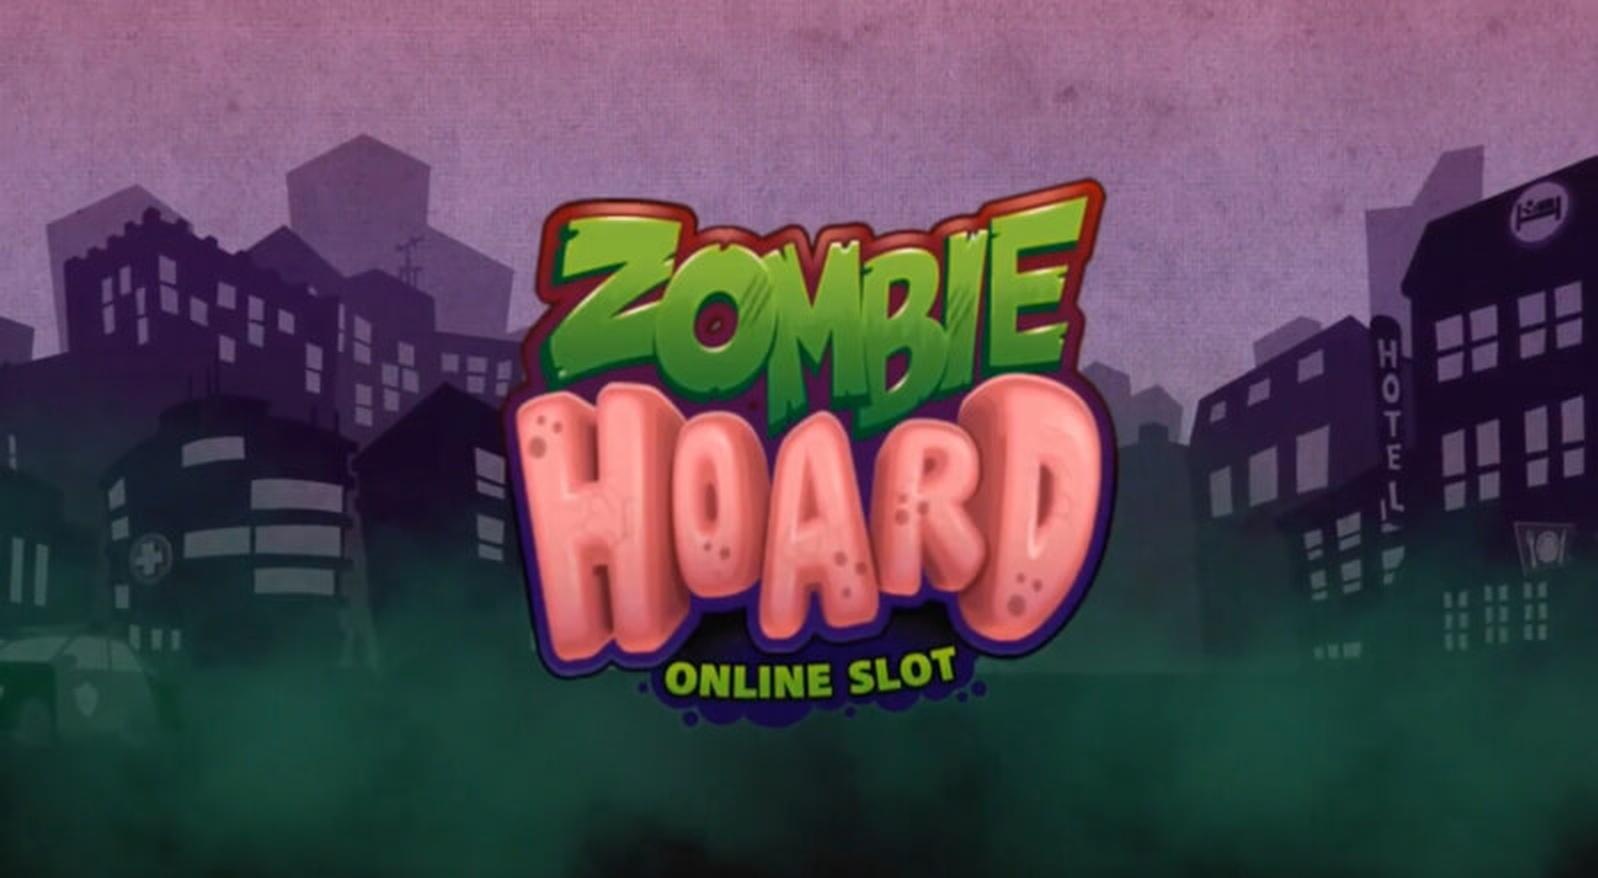 The Zombie Hoard Online Slot Demo Game by Slingshot Studios